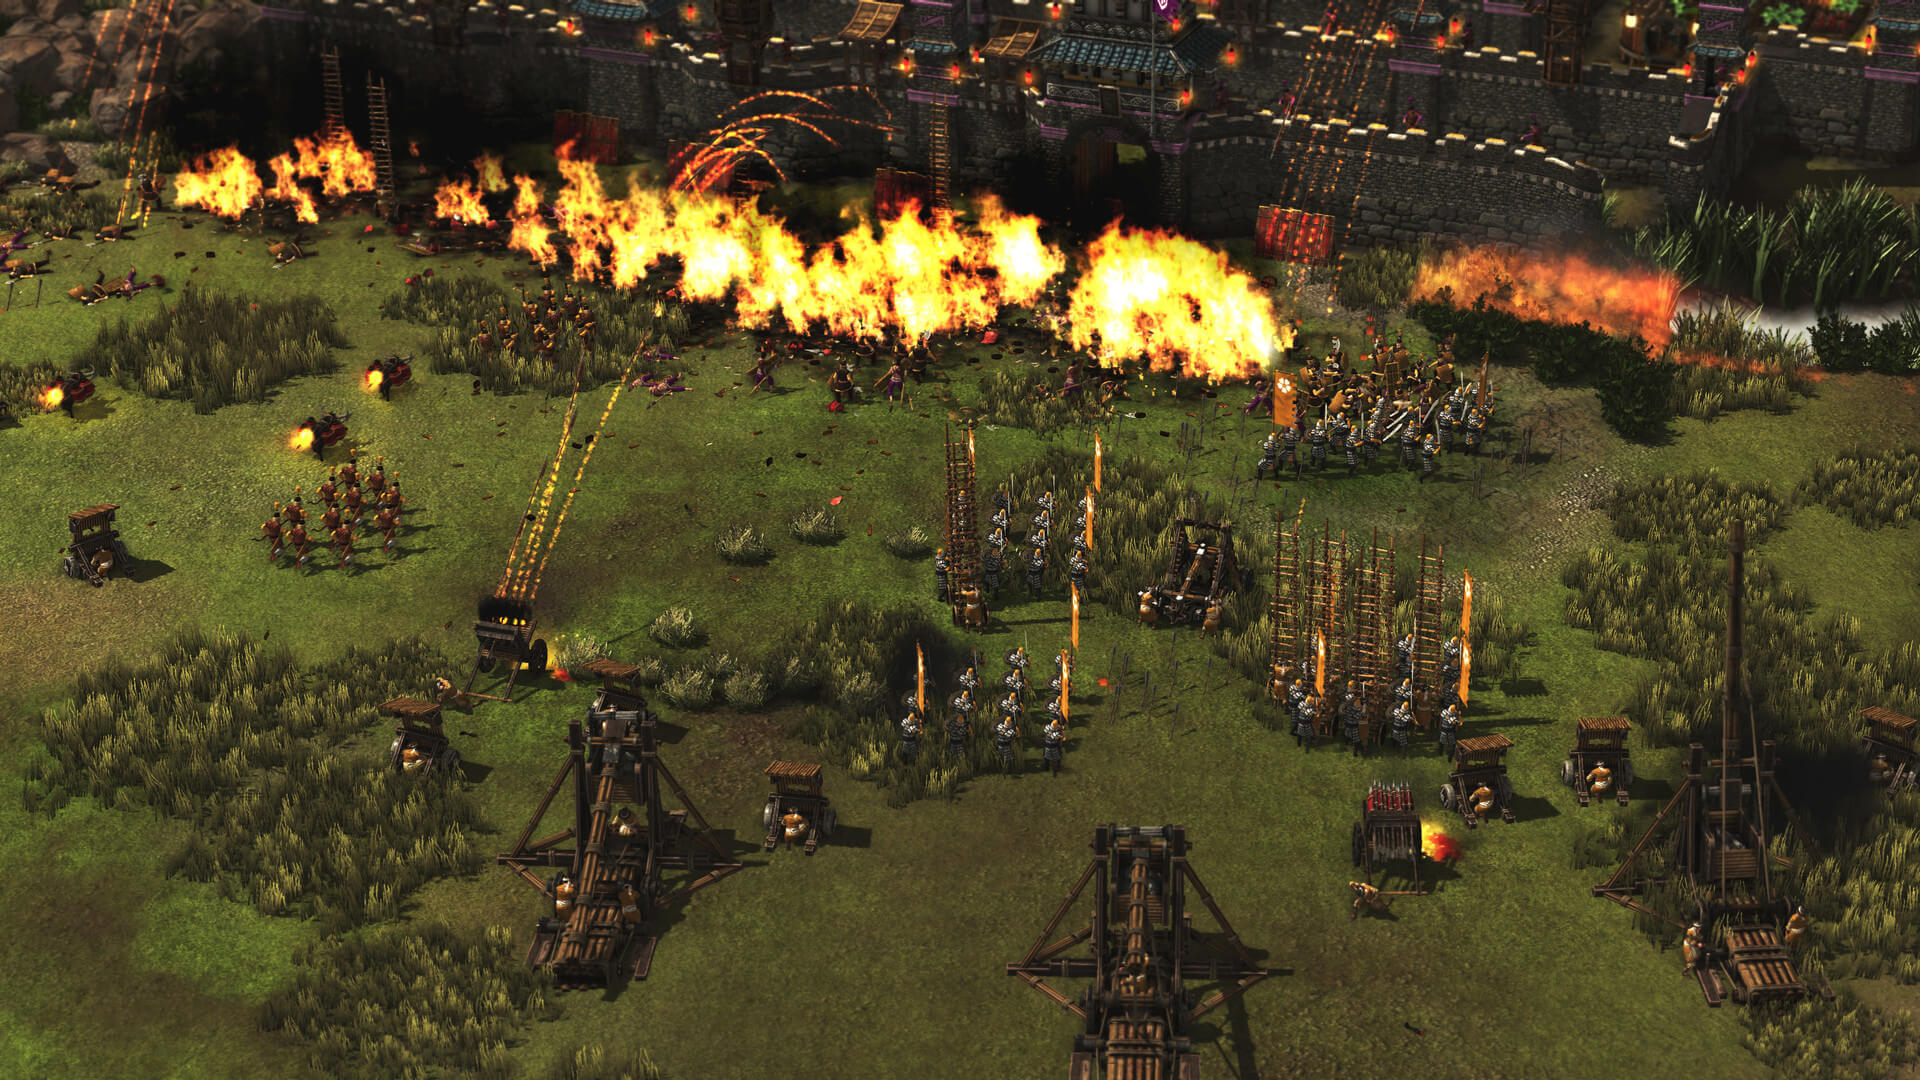 Rockets in Stronghold: Warlords